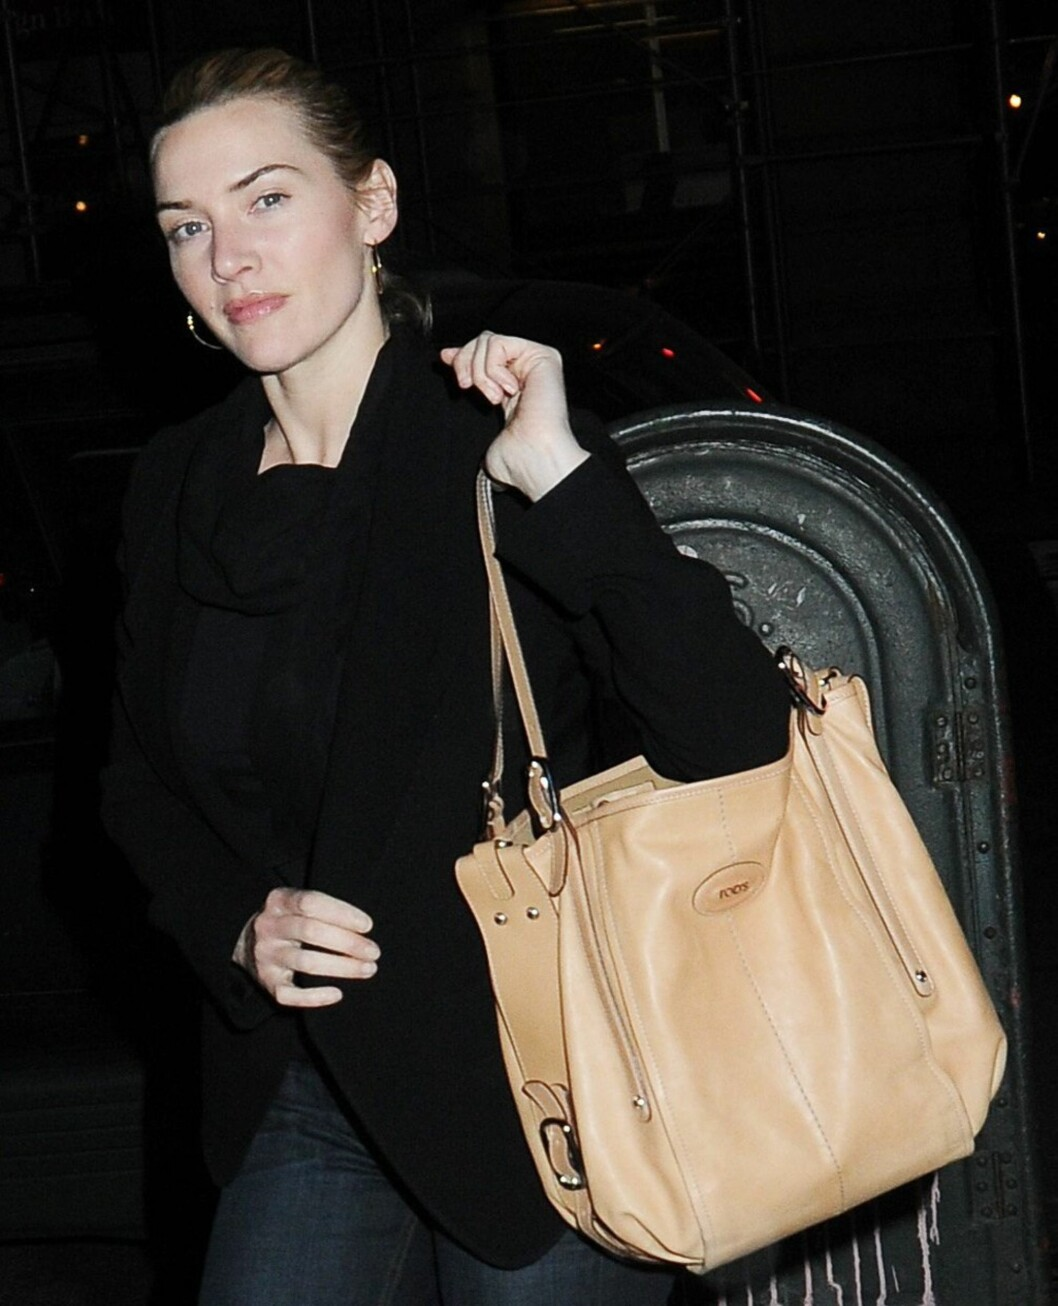 Skuespiller Kate Winslet med en flunkende ny Tod's G-bag på armen. Foto: All Over Press